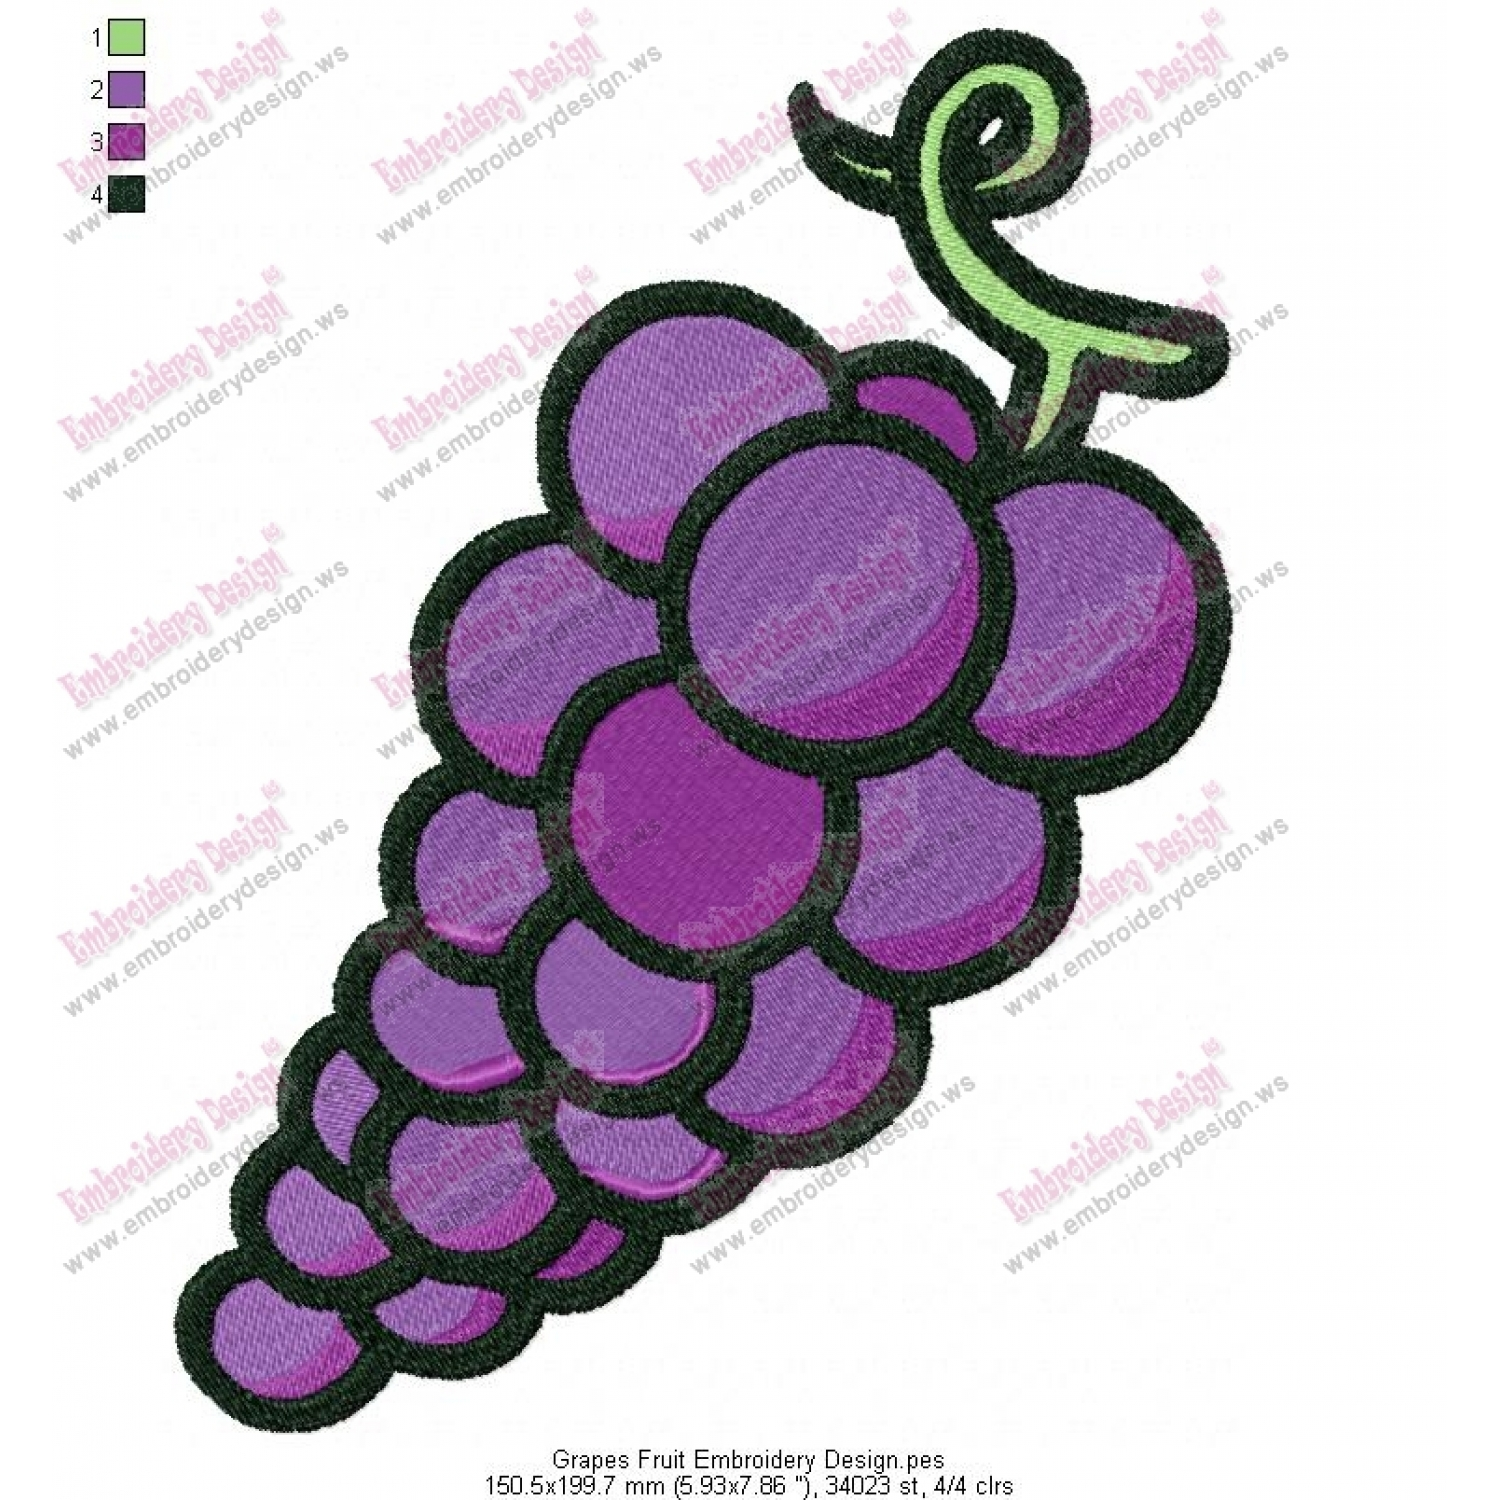 Grapes Fruit Embroidery Design